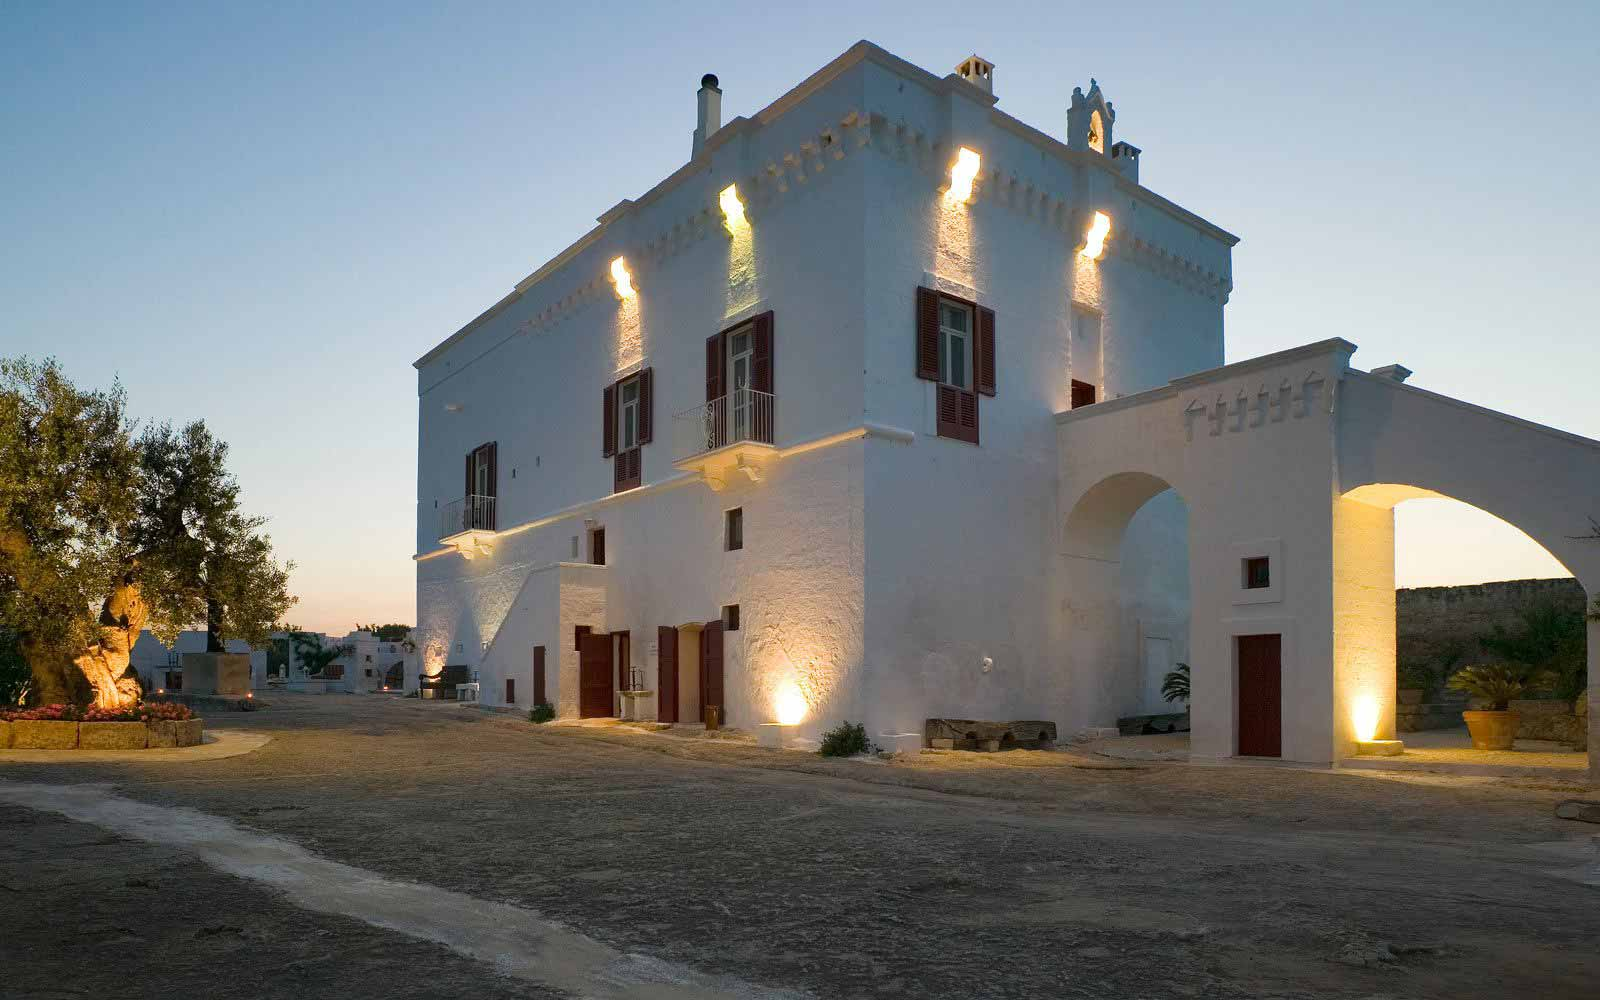 Exterior view of Masseria Torre Coccaro